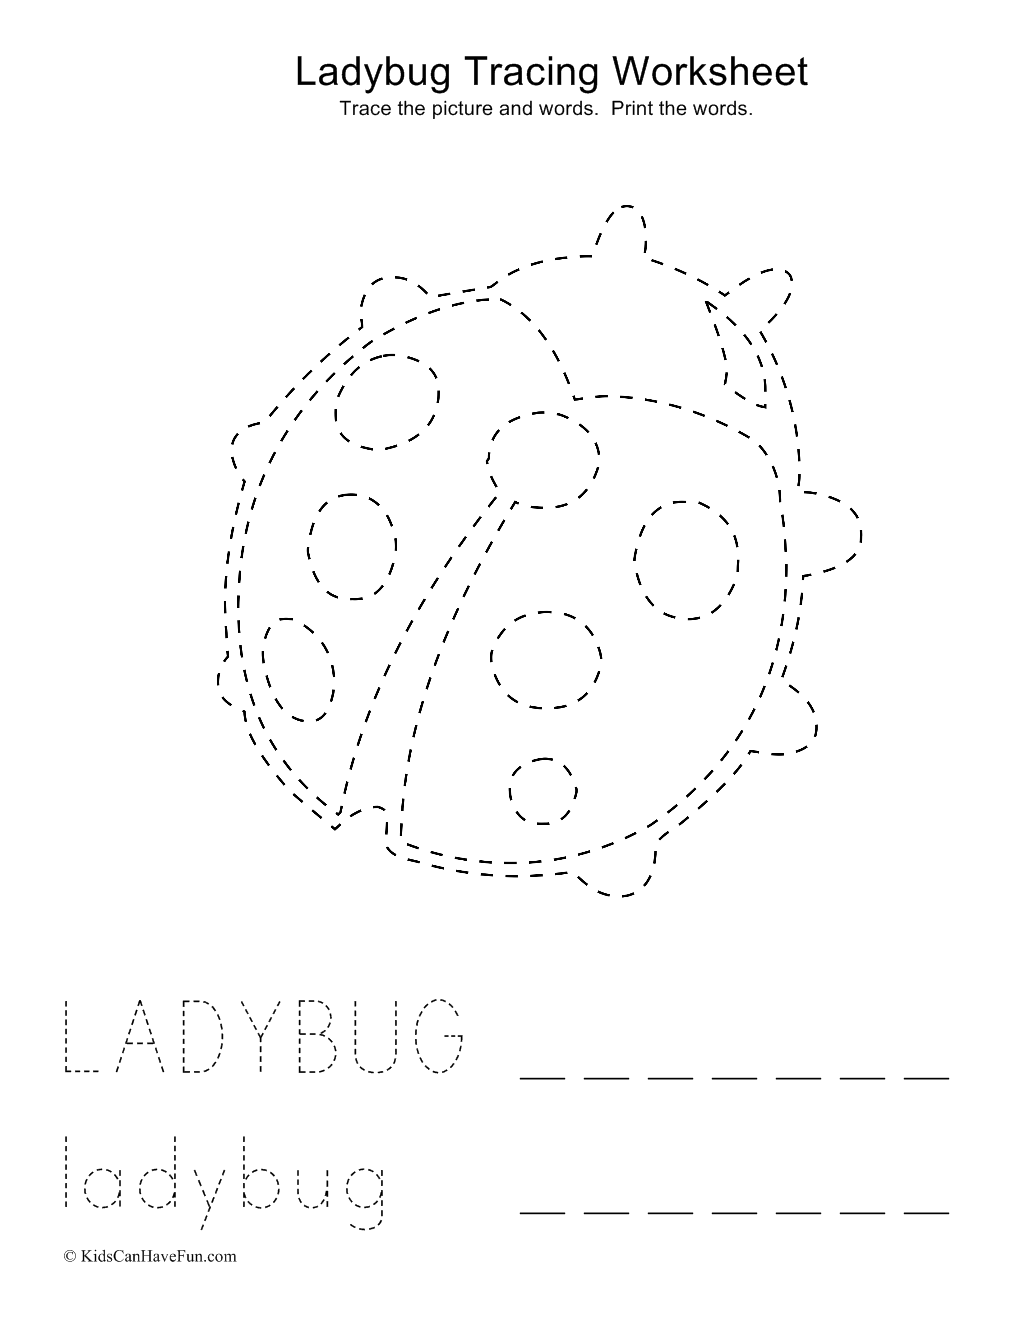 ladybug coloring pages worksheets - photo#29